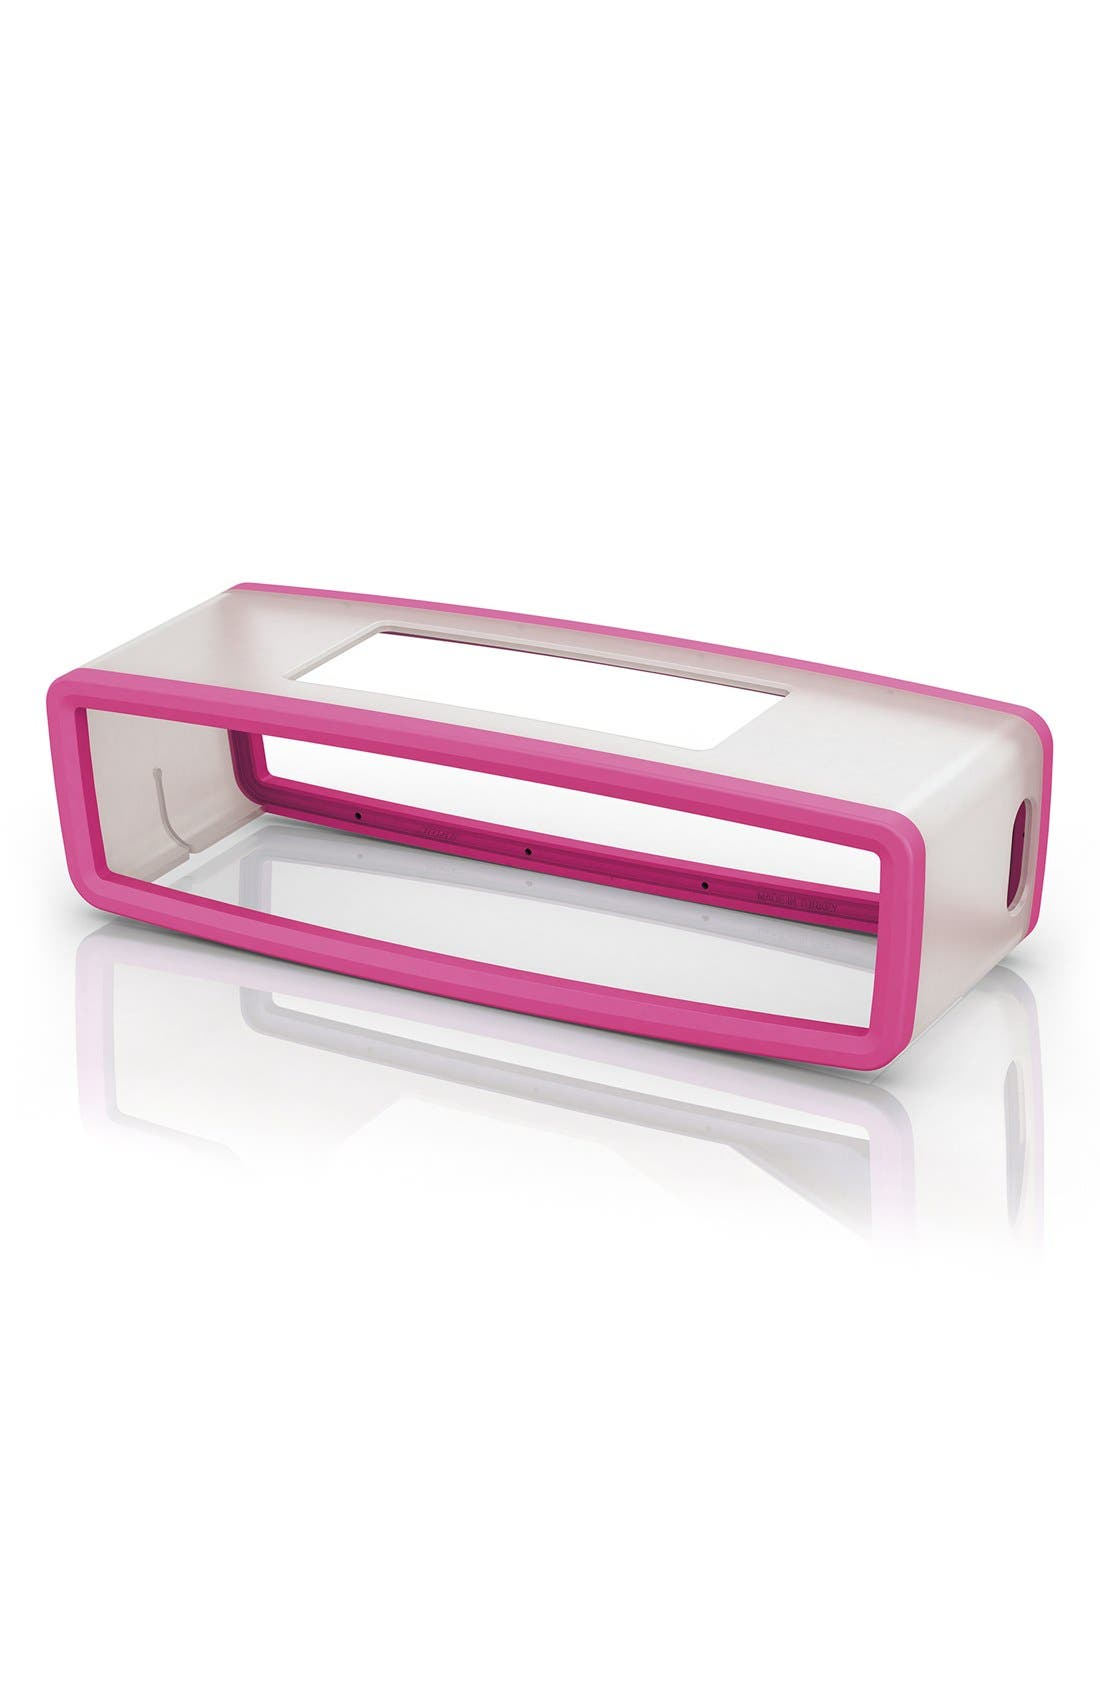 Main Image - Bose® SoundLink® Mini Speaker Cover